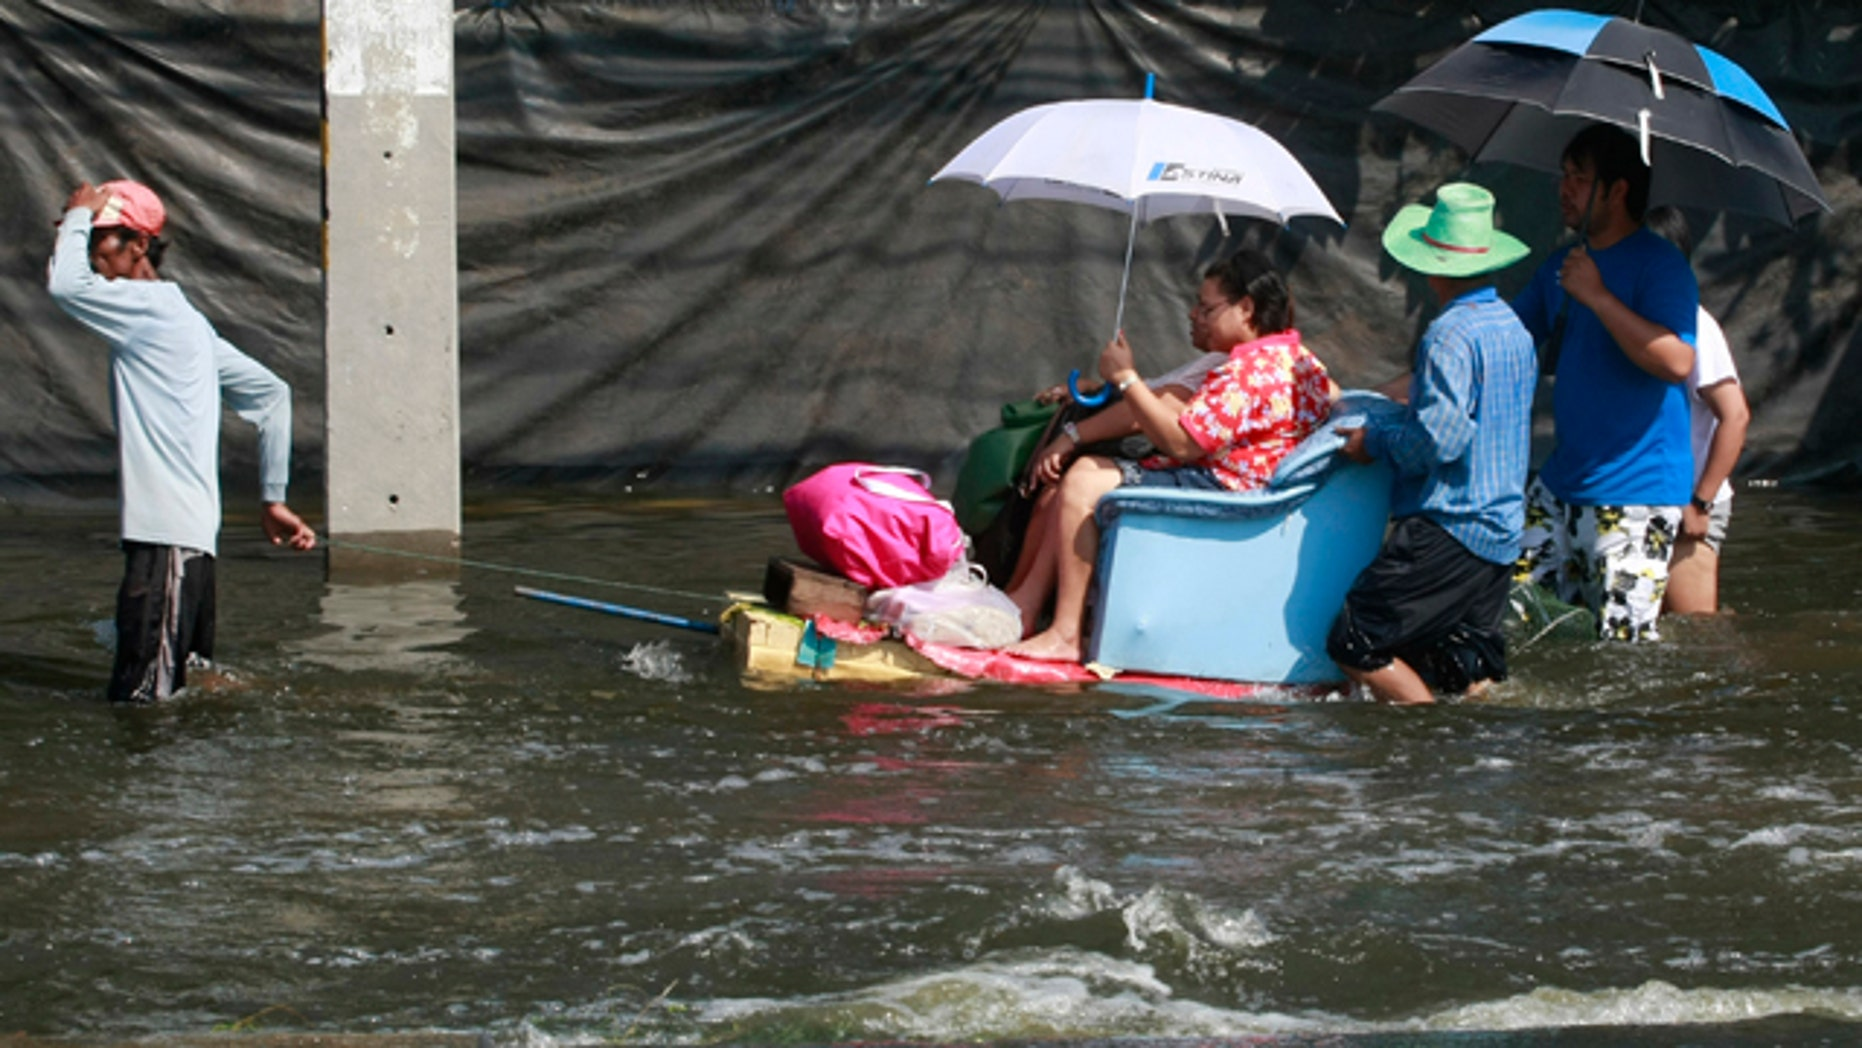 Oct. 24, 2011: A man pulls his decorated boat while making a service to his passenger on a flooded road in Bangkok, Thailand.